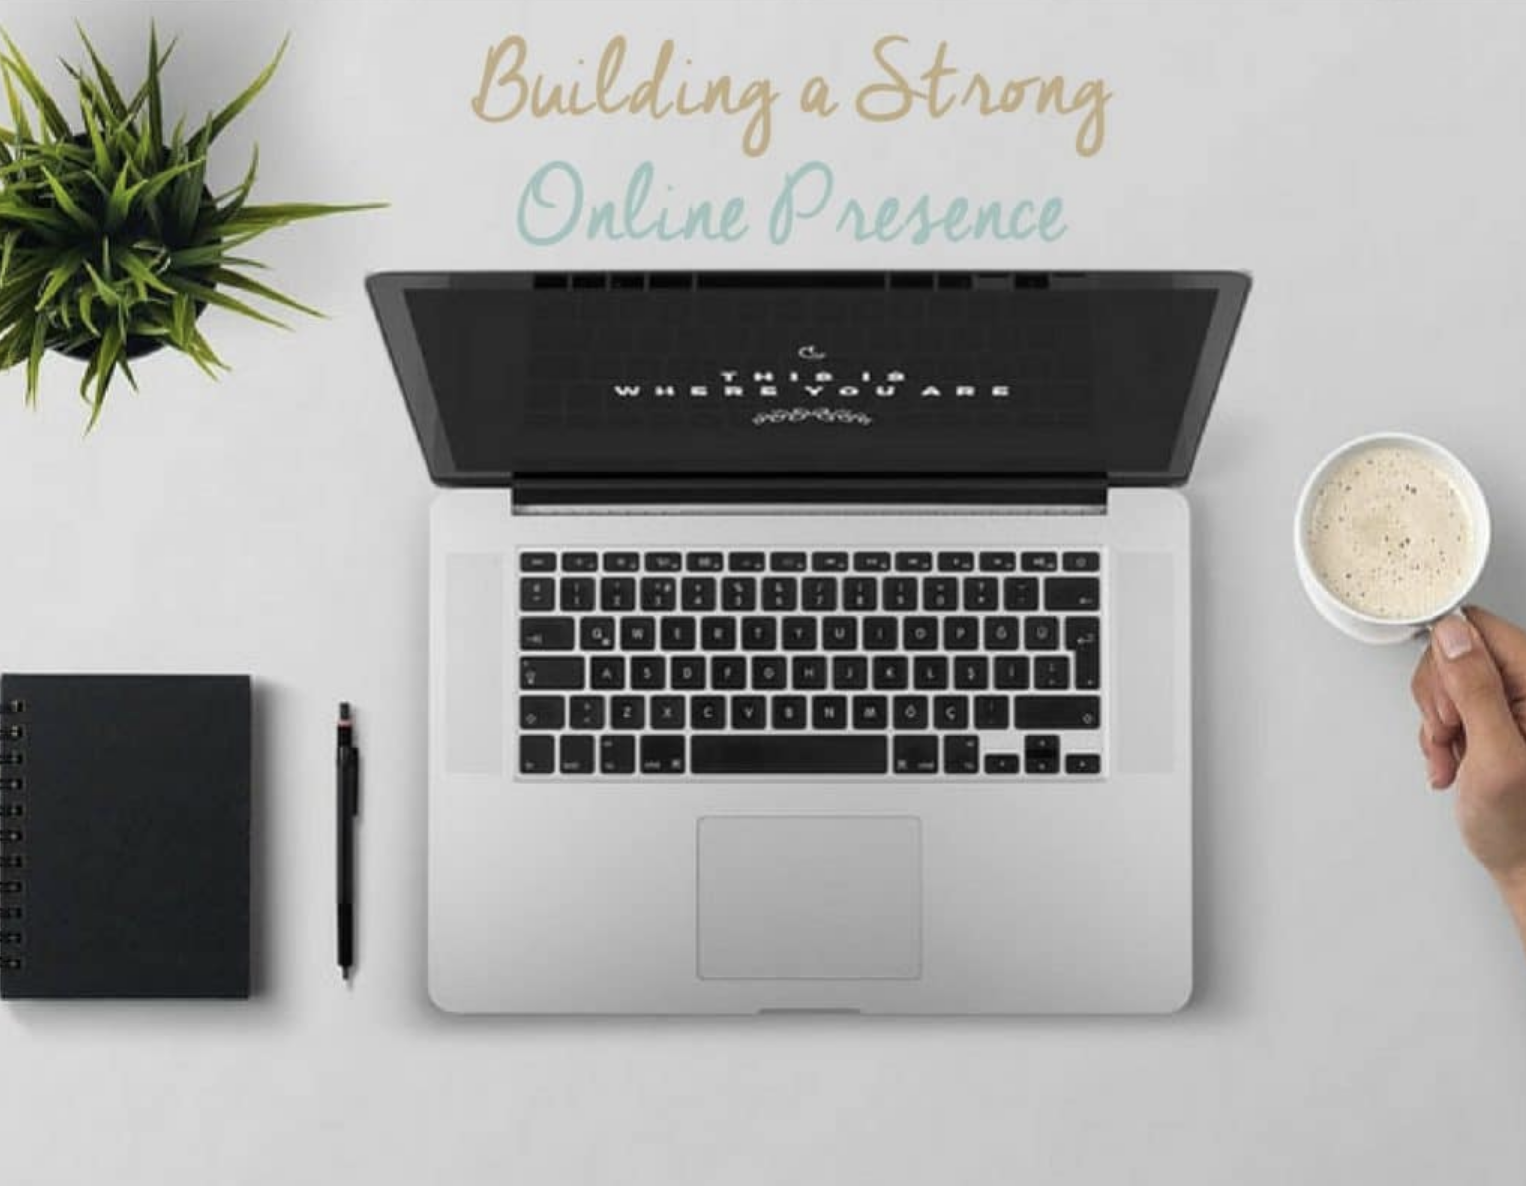 How to build a strong online presence when starting a new business